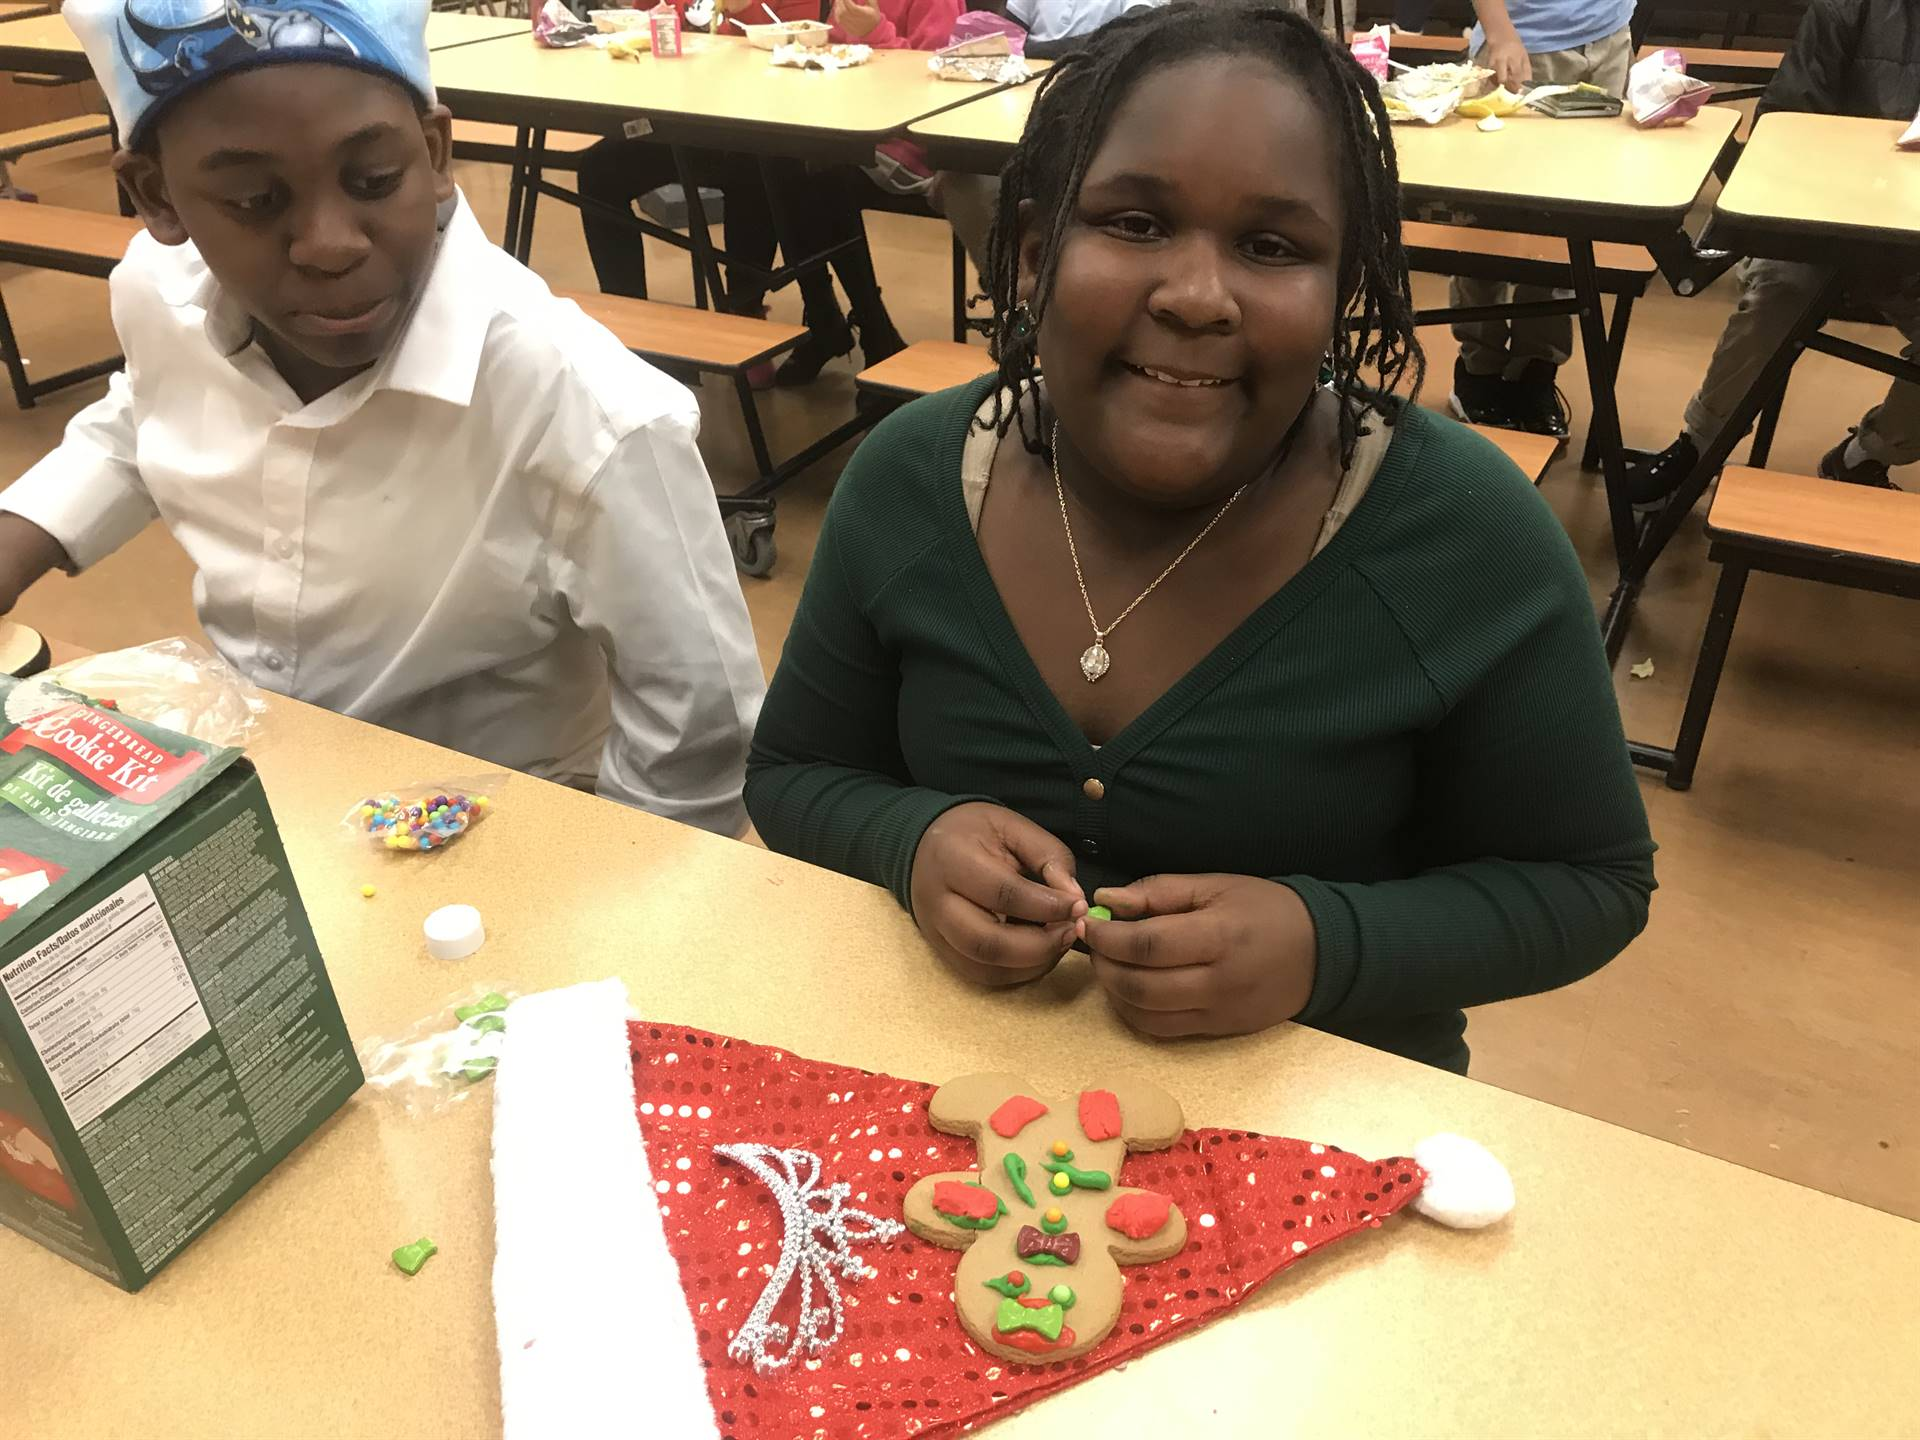 Chorus decorating gingerbread men